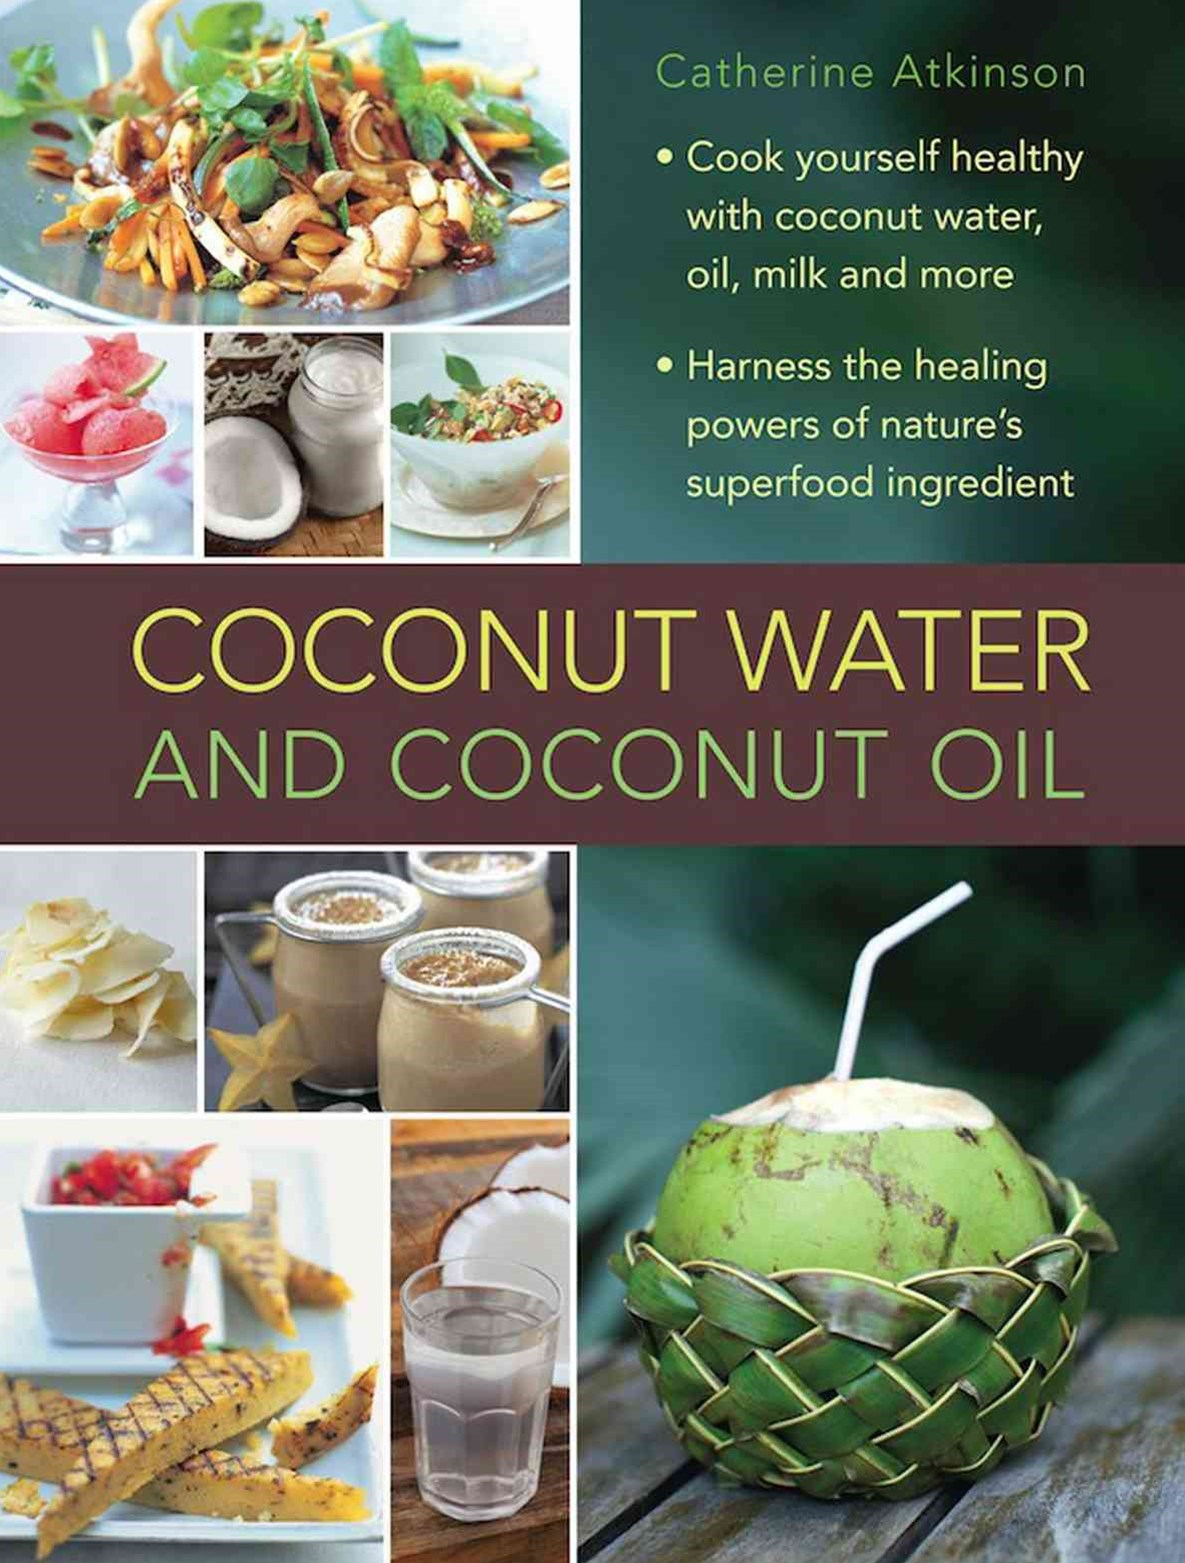 Coconut Water and Coconut Oil